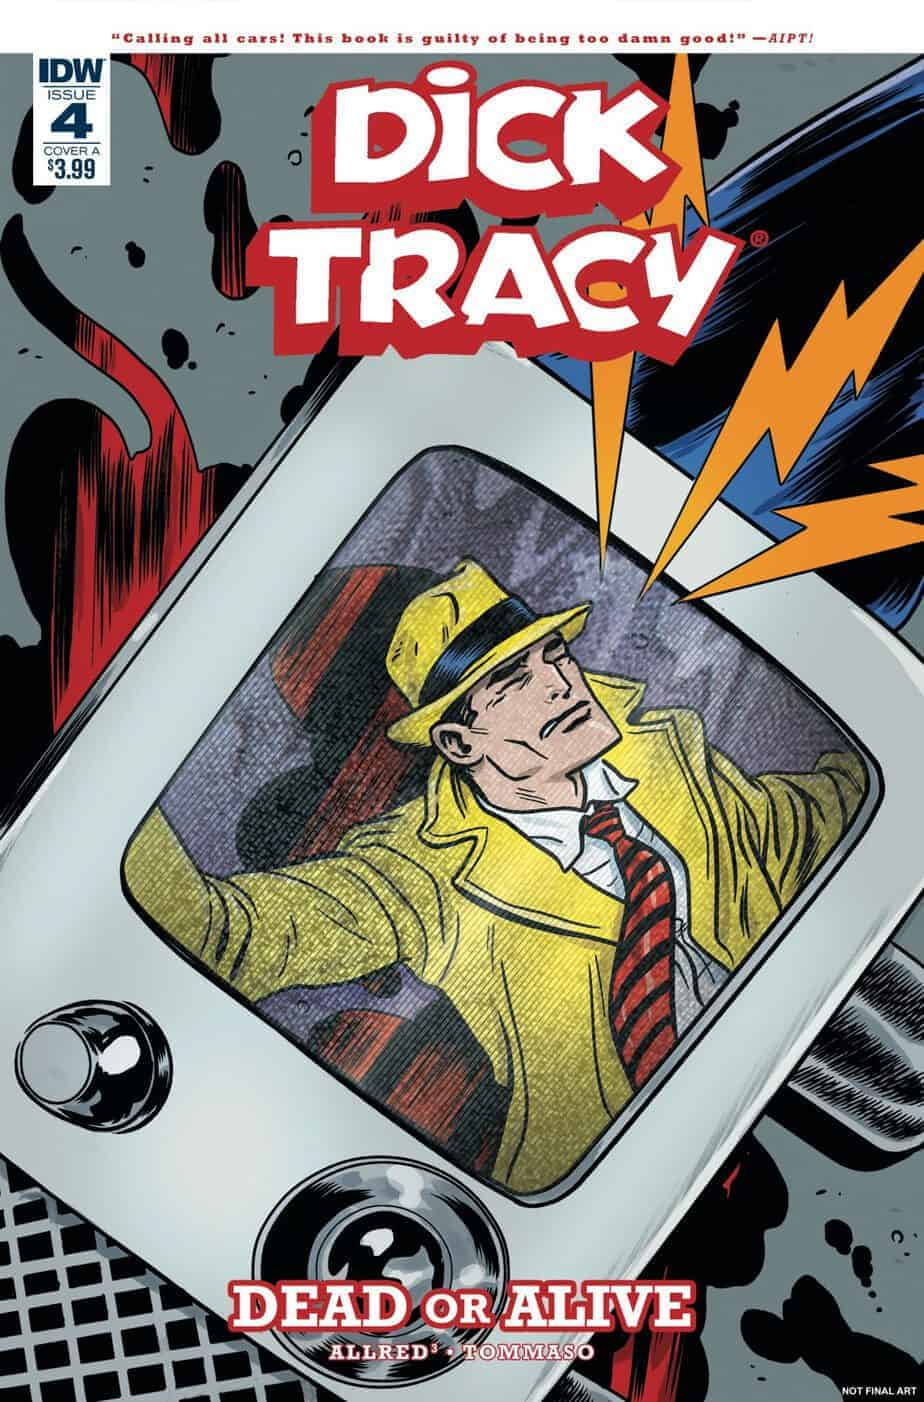 Dick Tracy: Dead or Alive #4 - Cover A